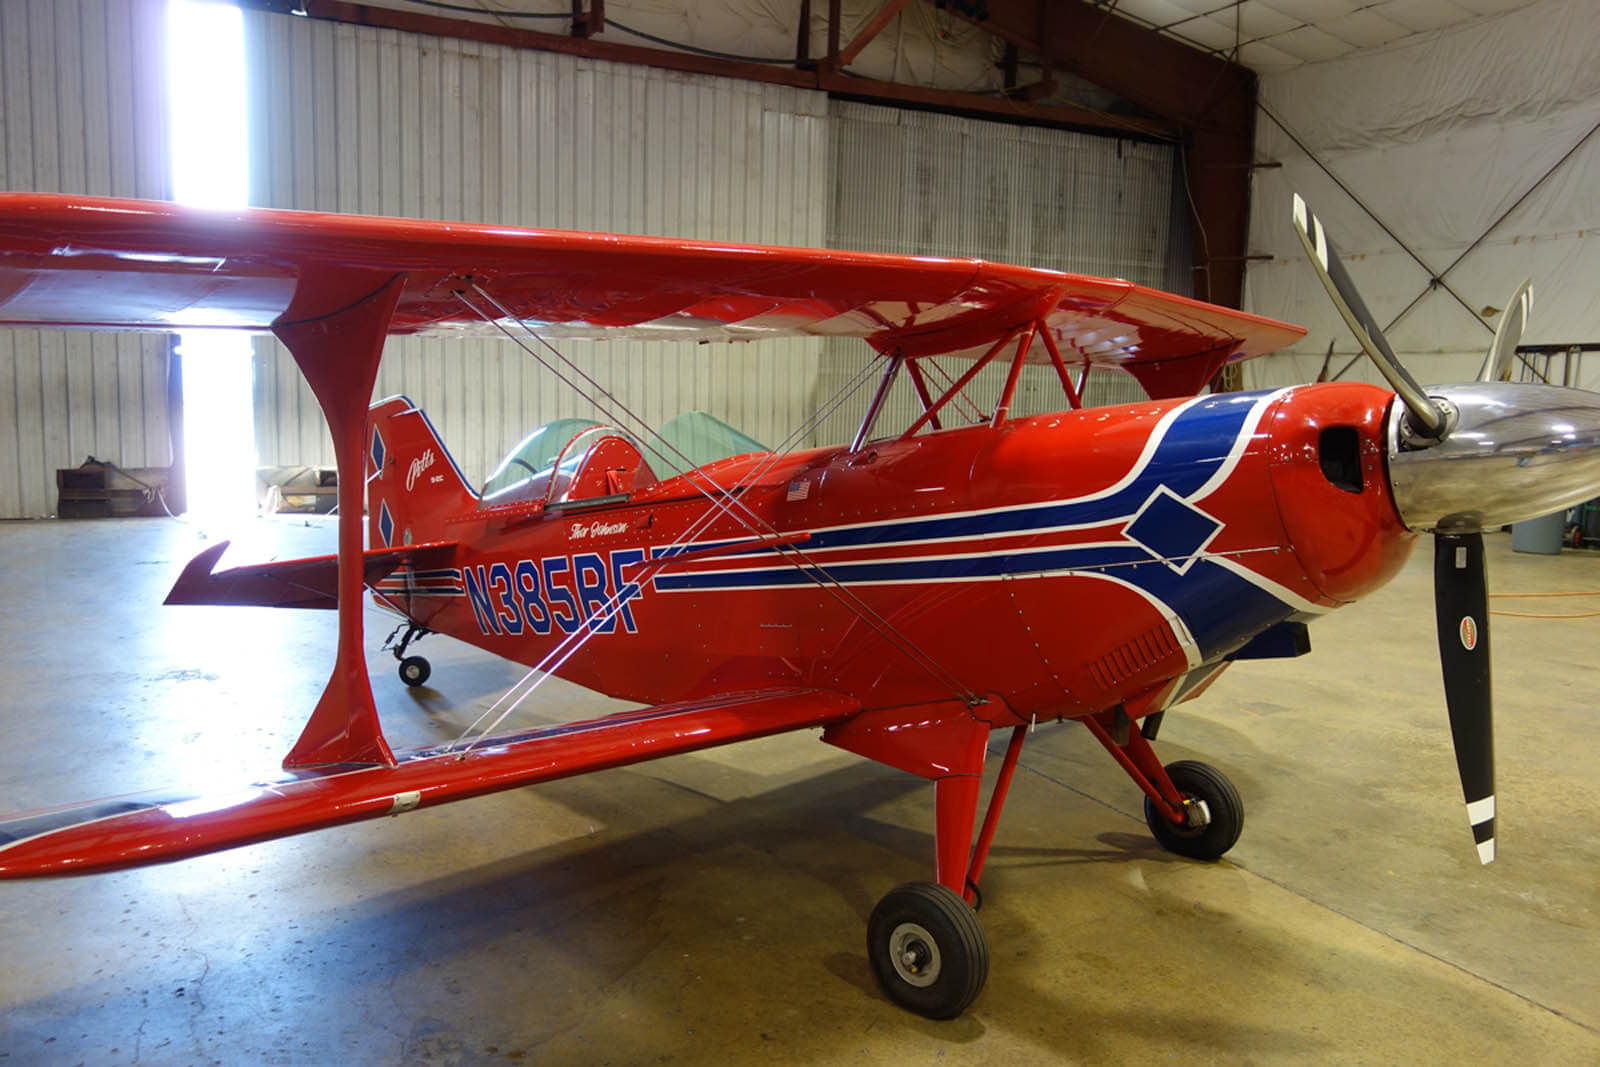 2007 Pitts S2C - FOR SALE at Princeton Airport ~ Contact Ken Nierenberg at 609-731-4628 for details